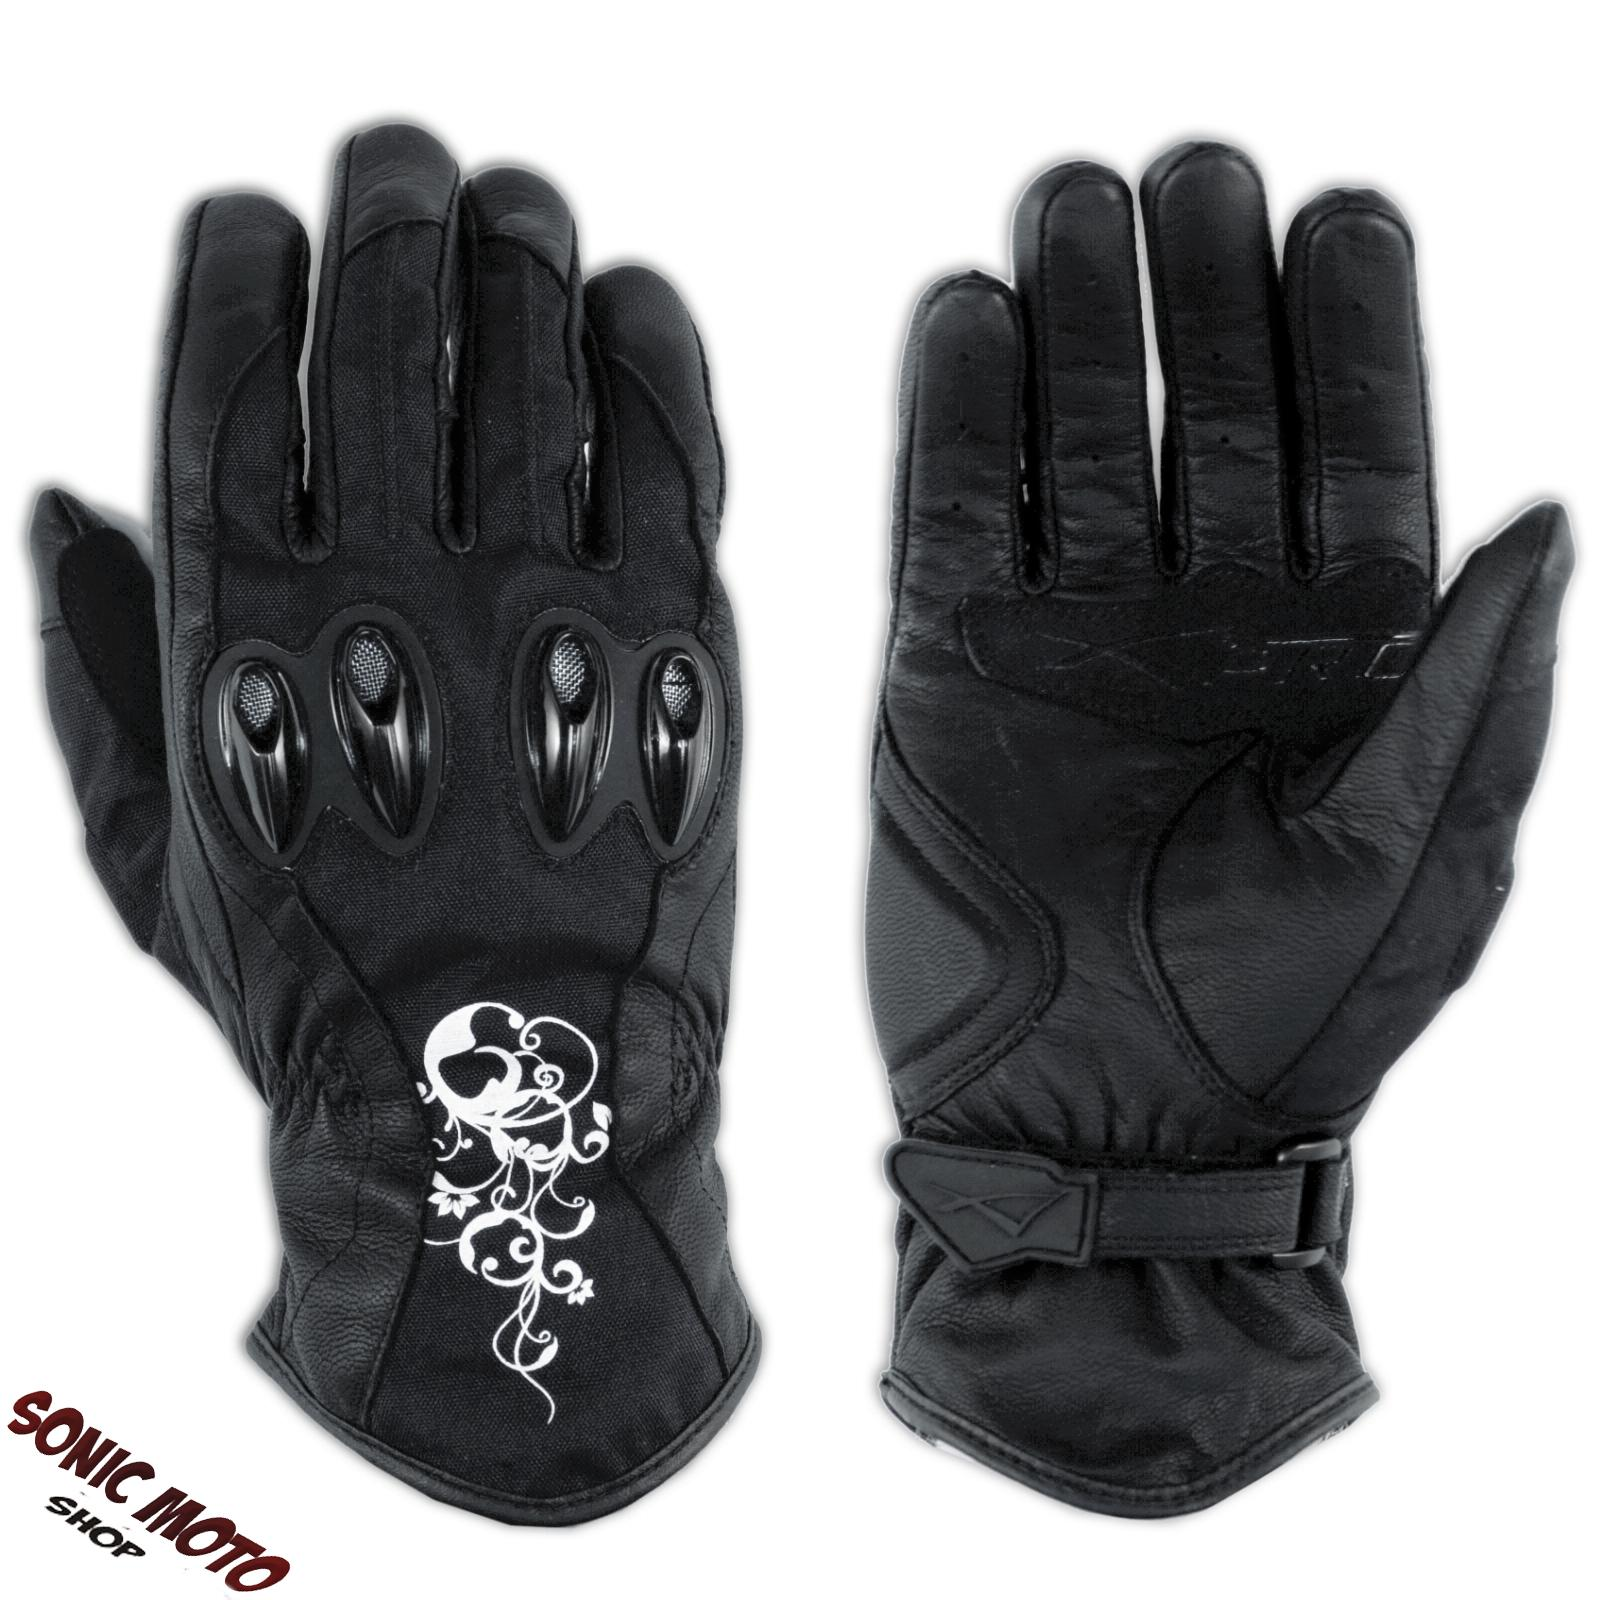 gants textile cuir protections coques renforts femme moto touring sport hivernal ebay. Black Bedroom Furniture Sets. Home Design Ideas